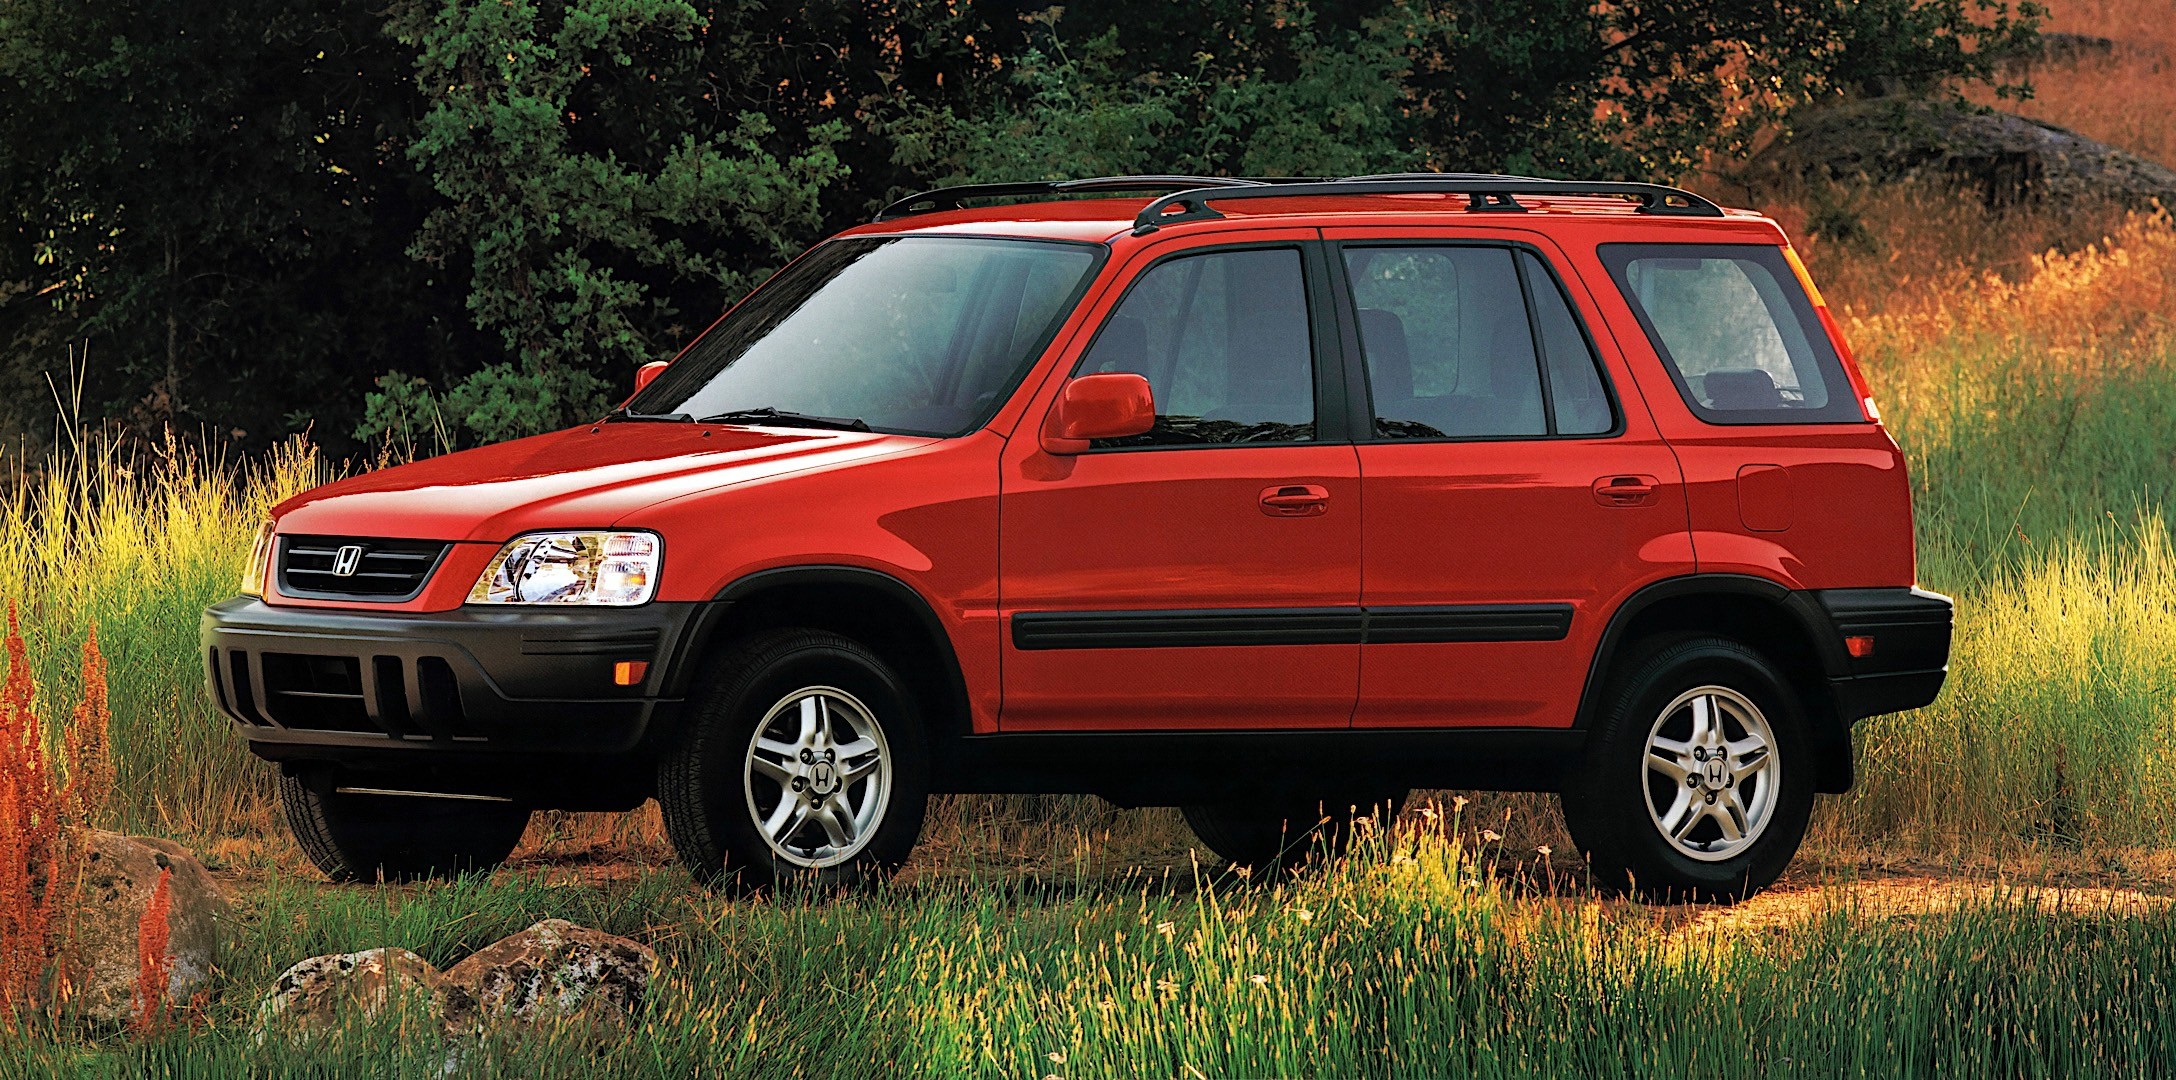 1996 cr v owners manual